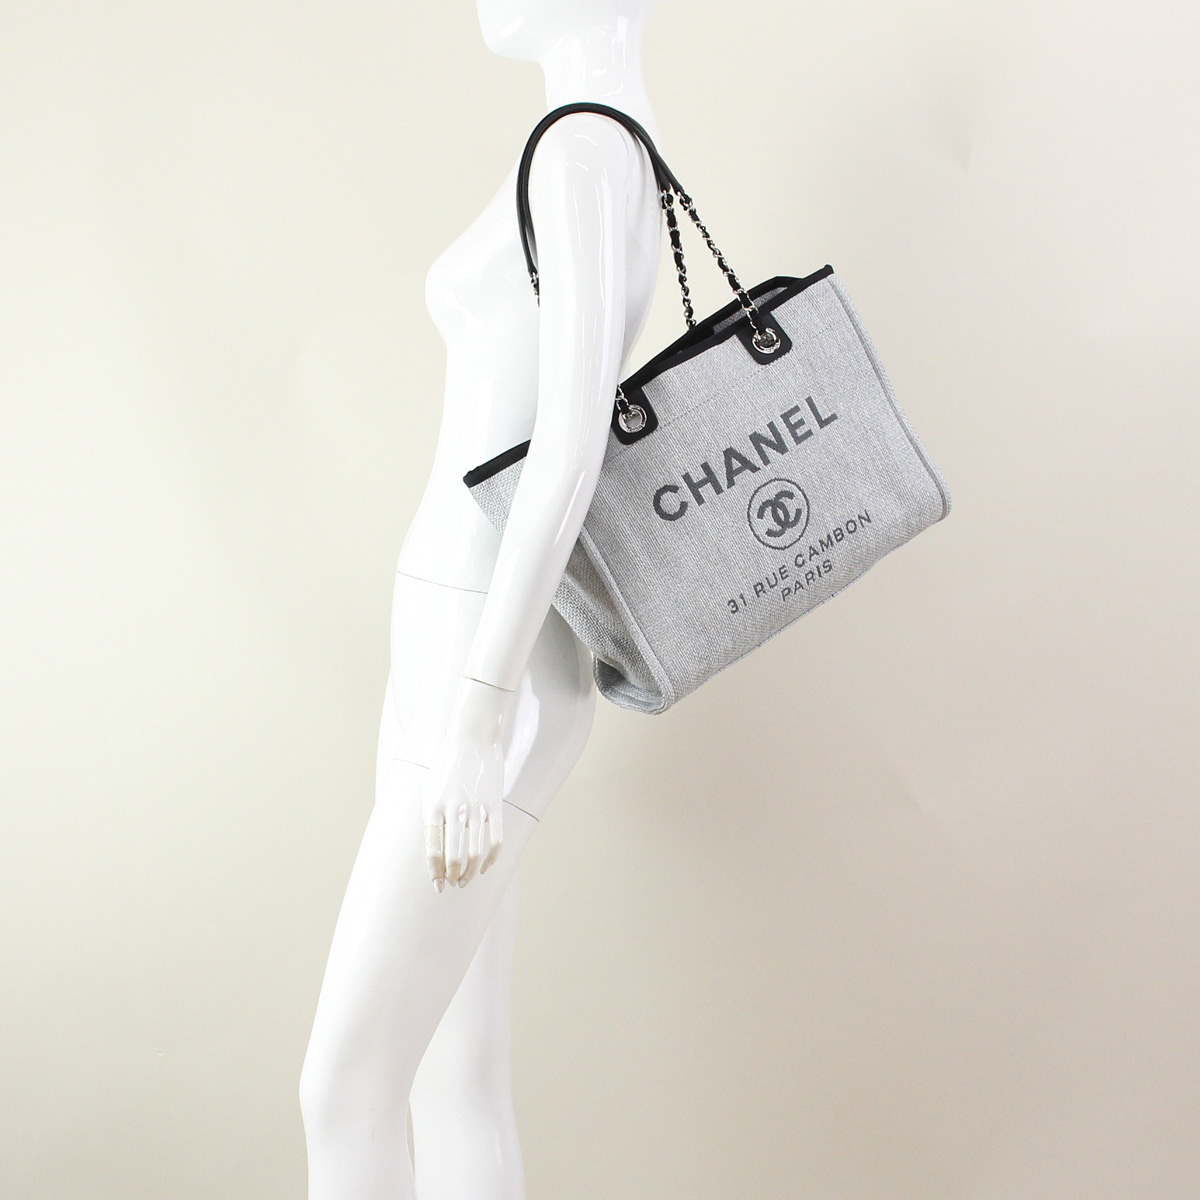 9cd4f540ff5d Bighit The total brand wholesale  Chanel tote bag A67001 Greg la ...